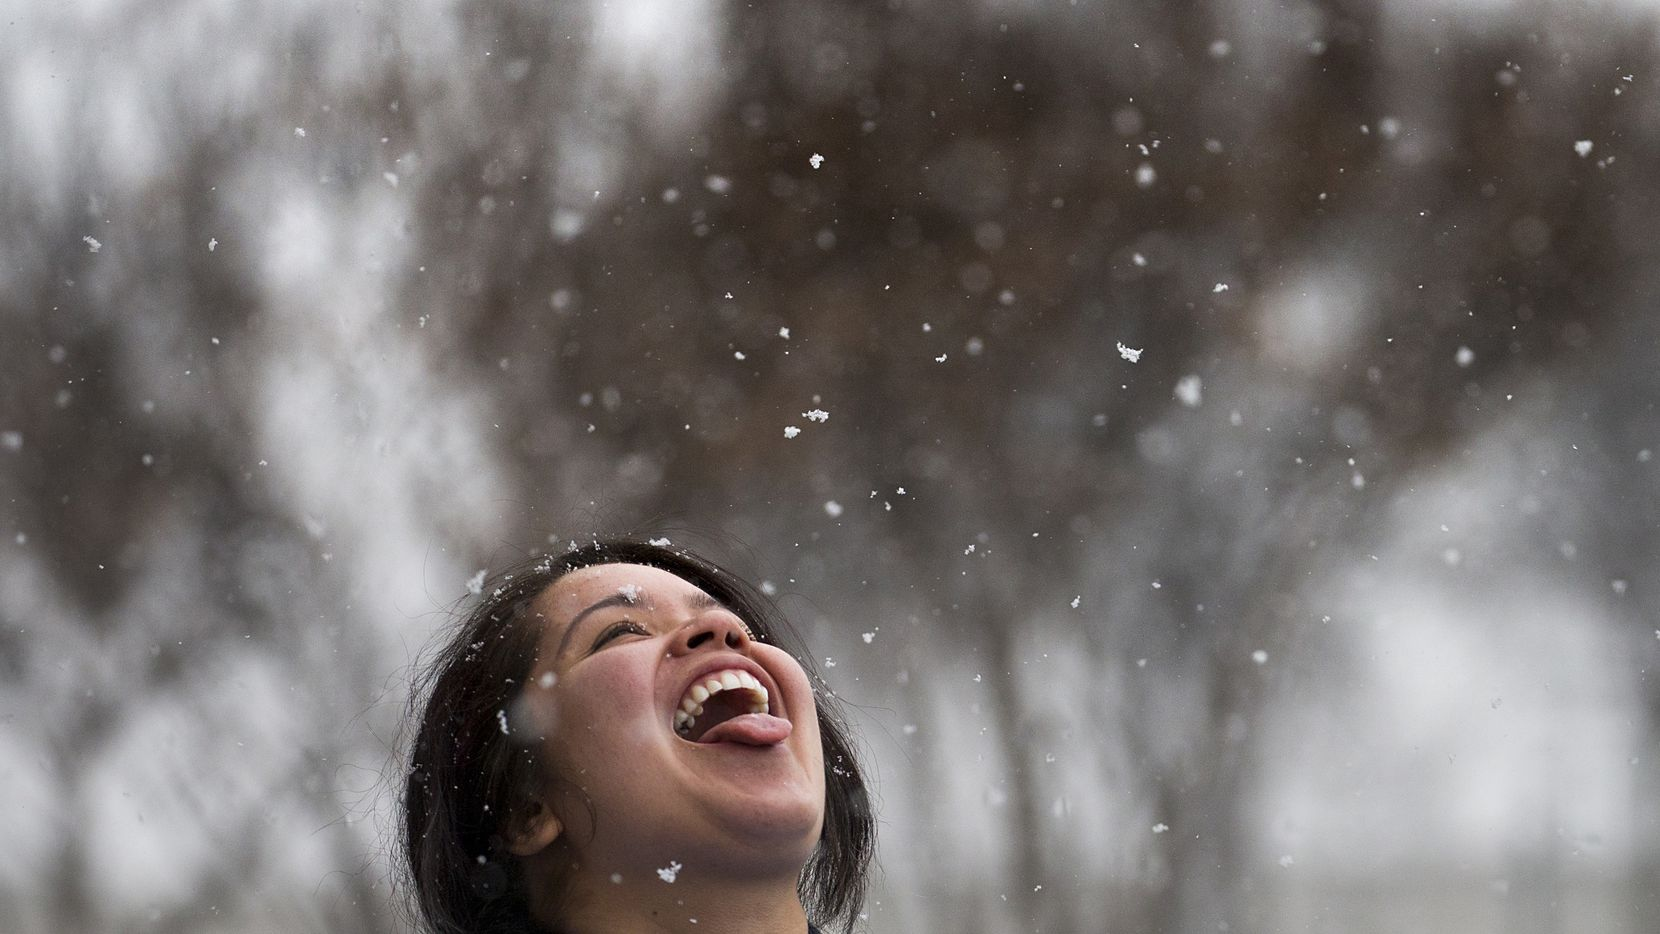 Racene Mendoza stepped outside her job at a Richardson bakery to try catching snowflakes in early January 2017.